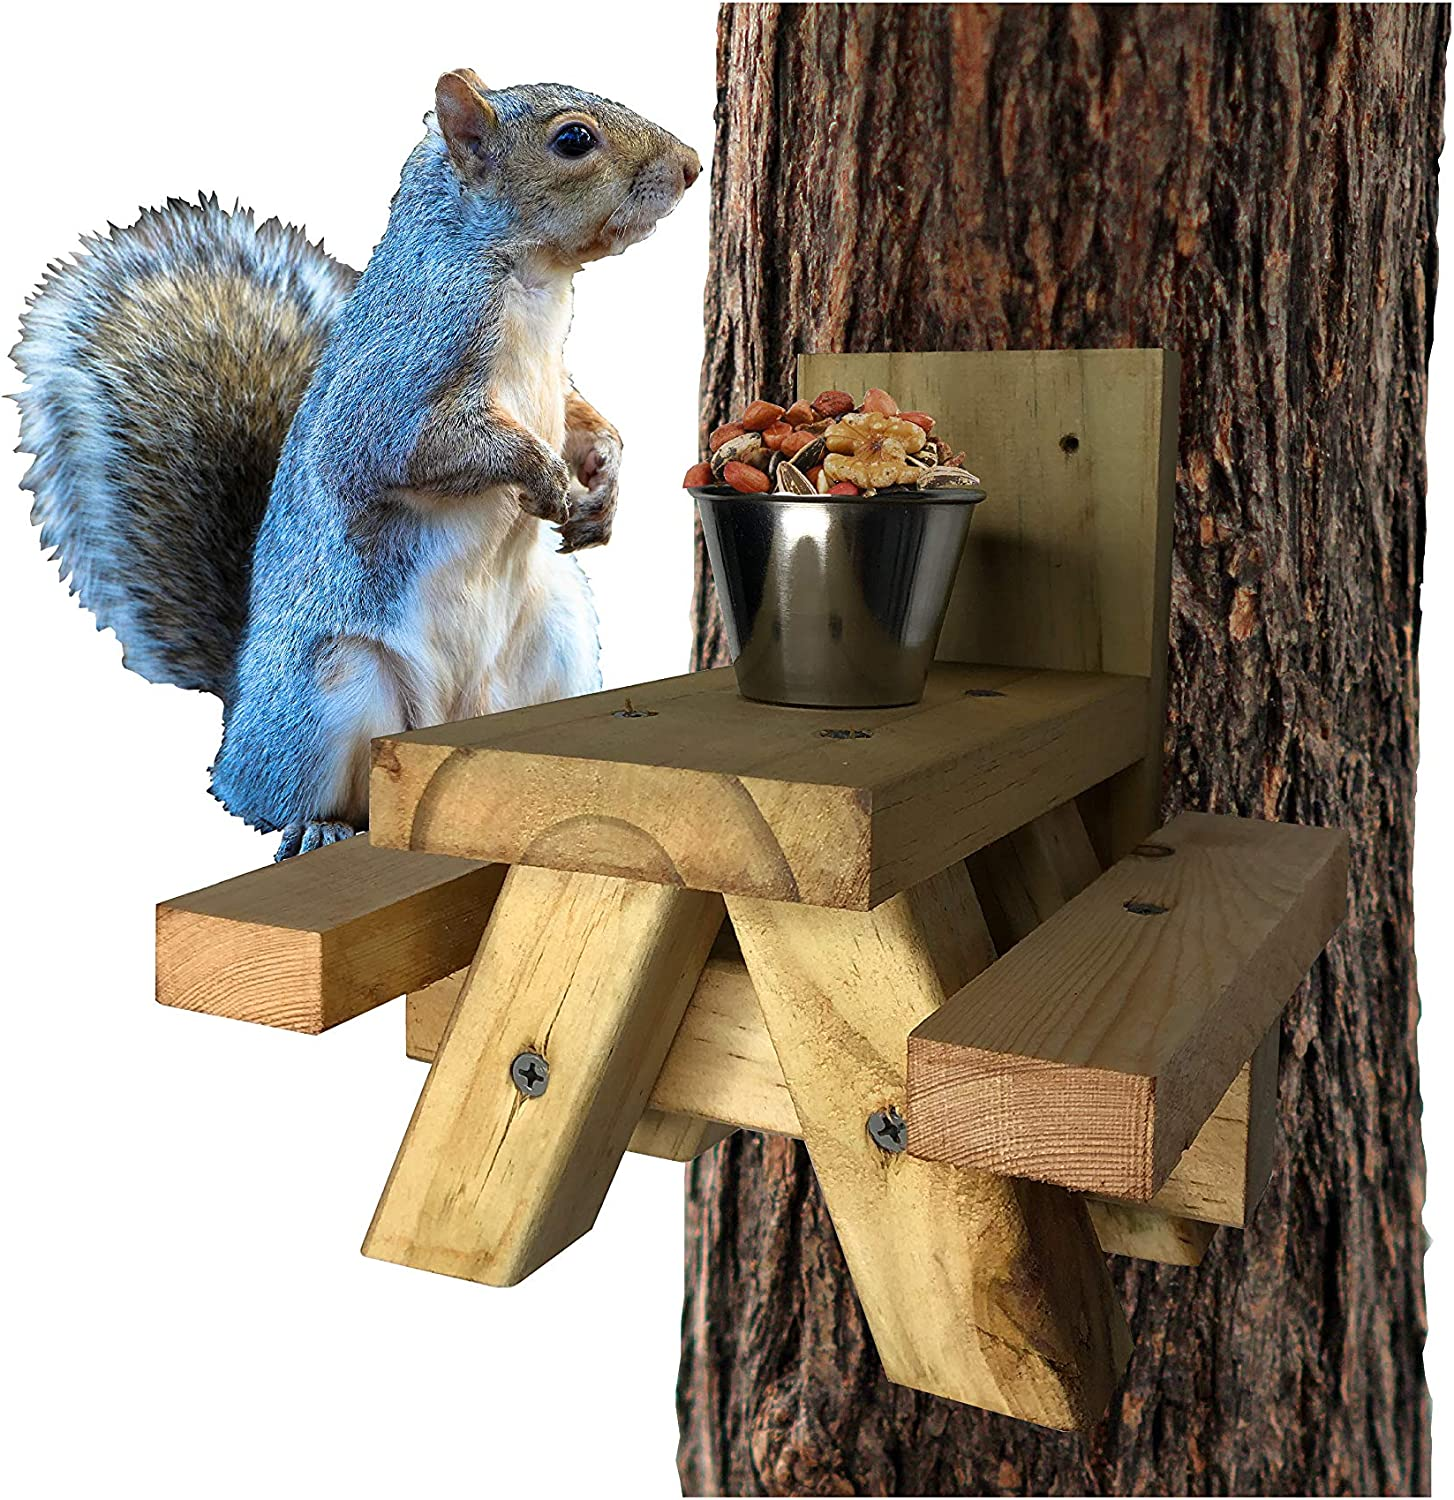 Squirrel Feeder Picnic Table - Squirrel Picnic Table with Cup Feed for Squirrel Food - Tree or Post Mount Squirrel Picnic Table Feeder - Loose Corn or Food or Peanuts